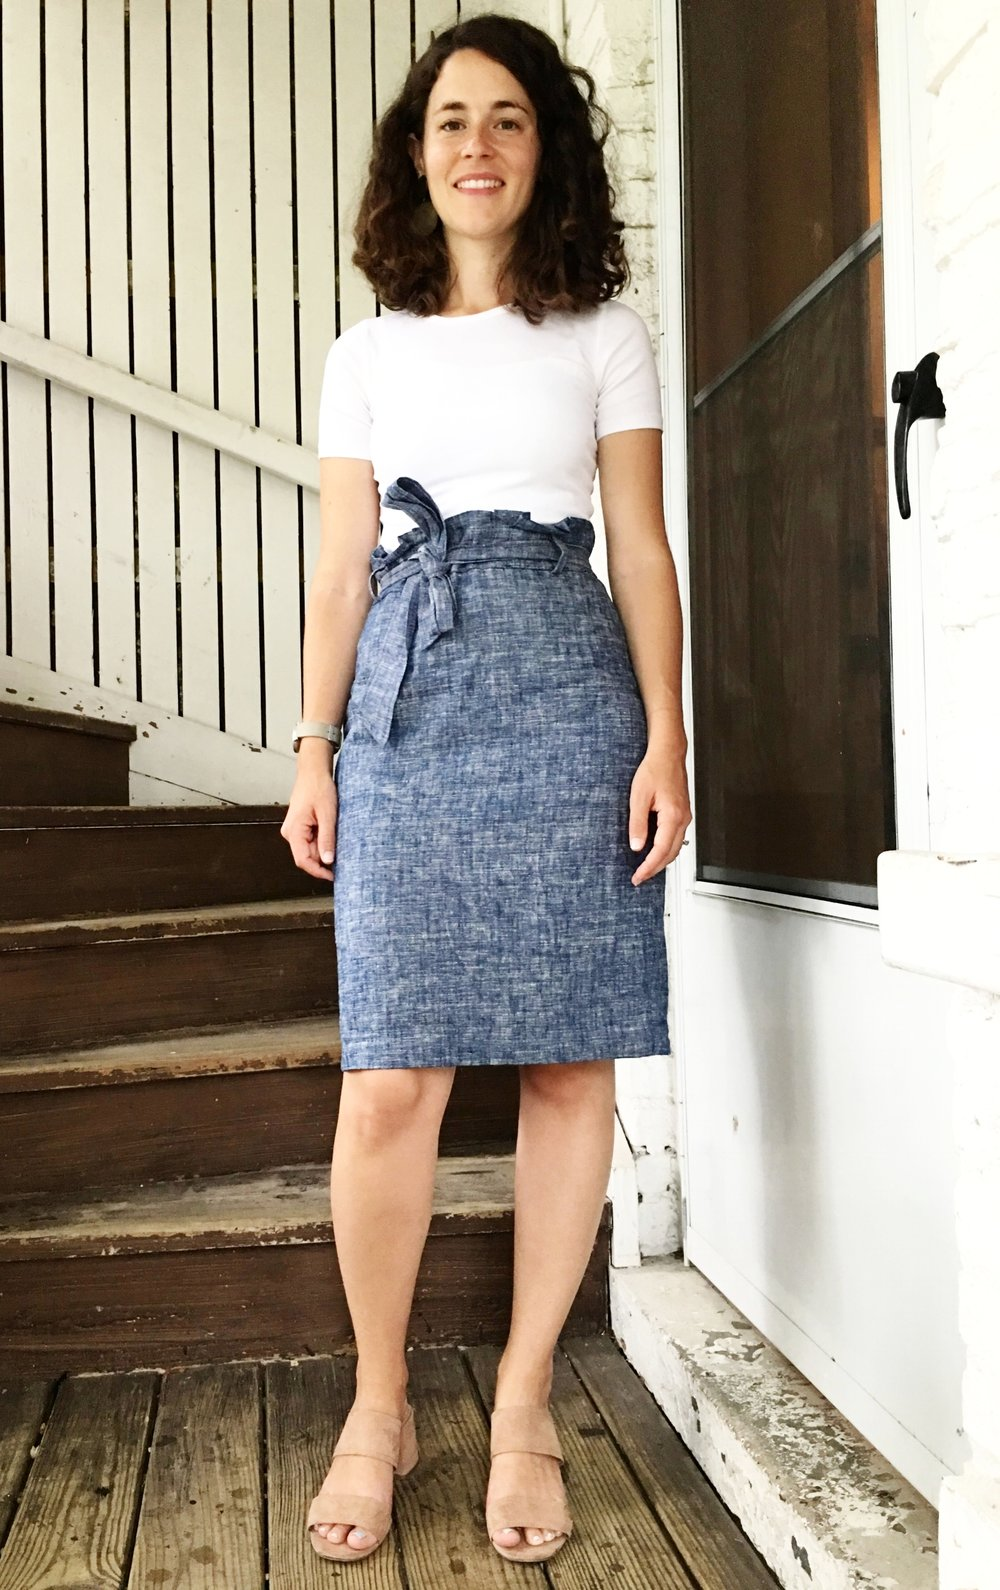 This skirt is discontinued from Ann Taylor, boo.